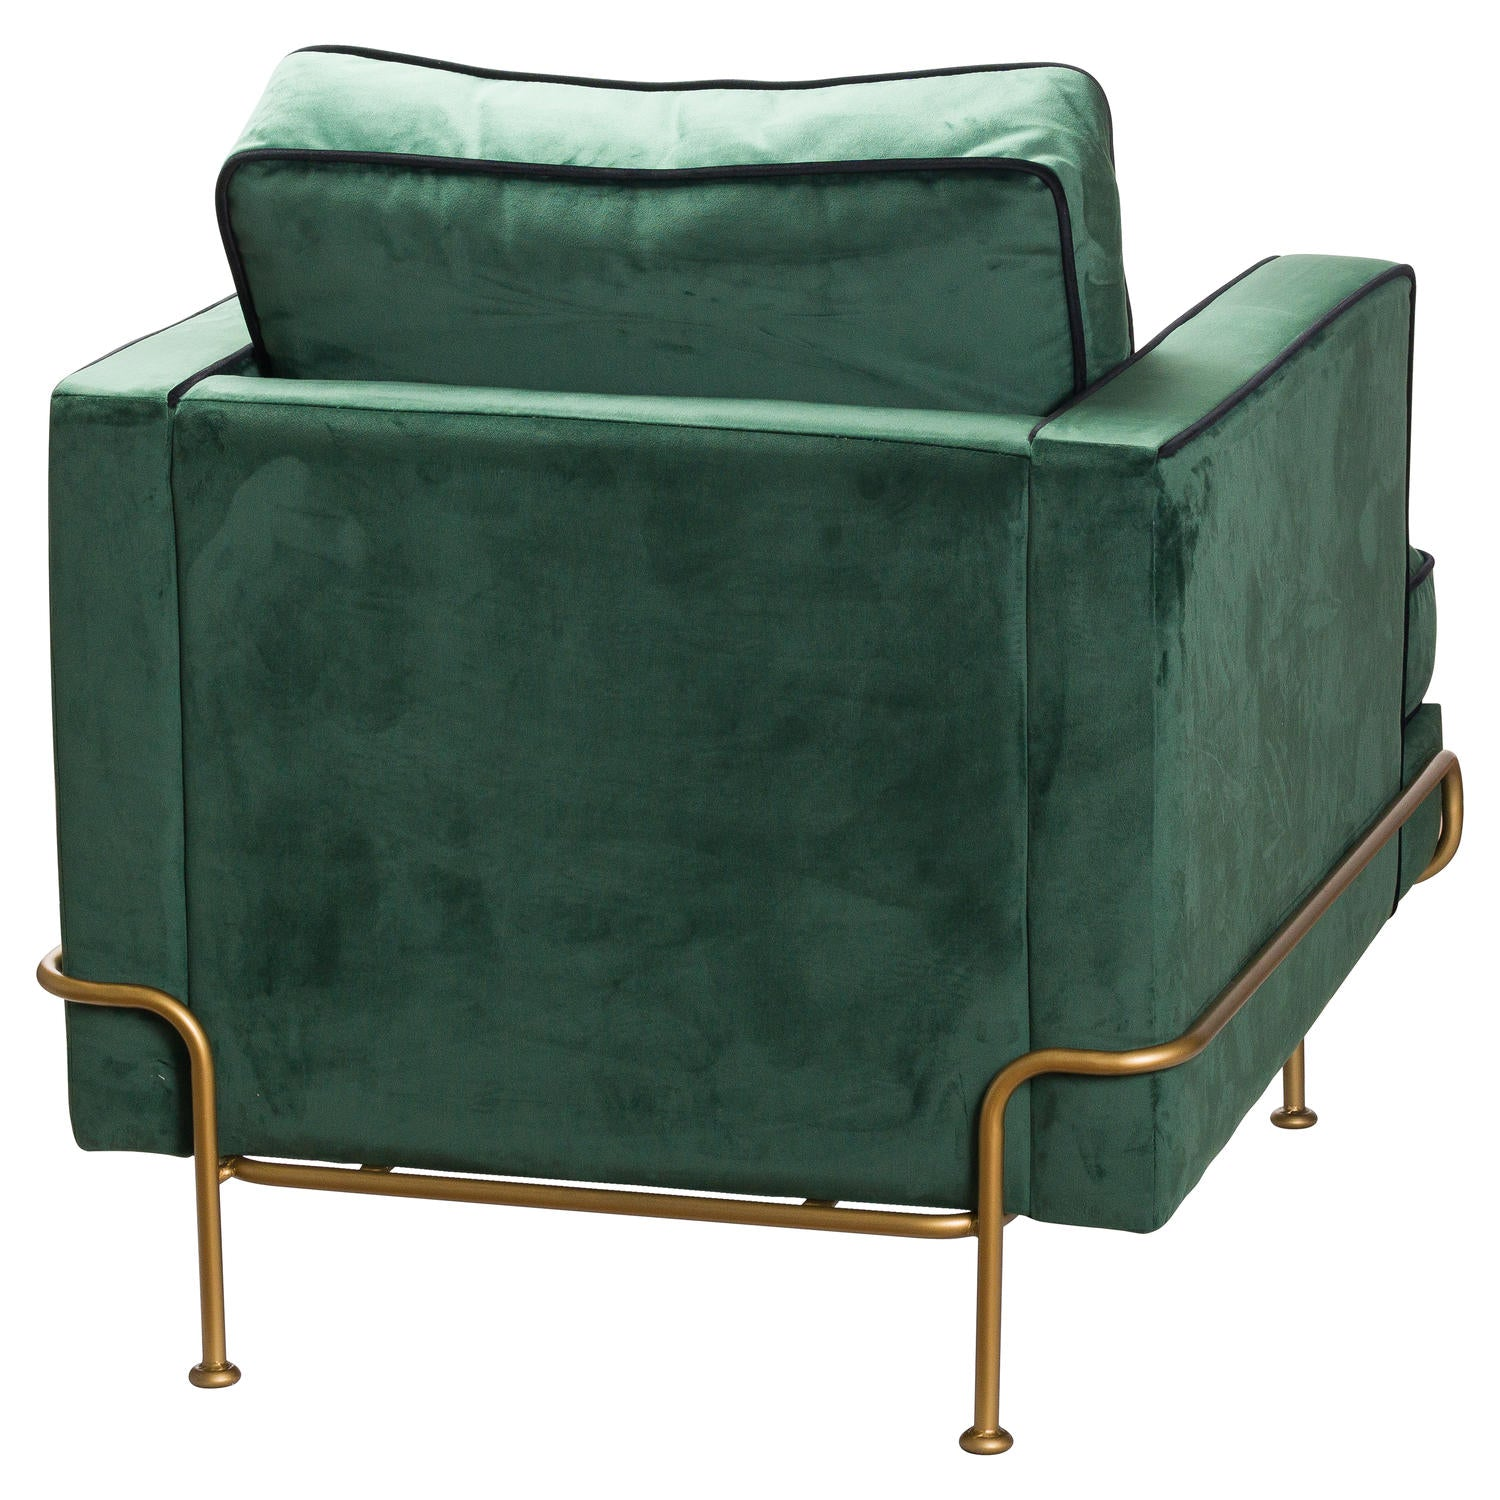 The Arden Emerald Green Velvet Armchair